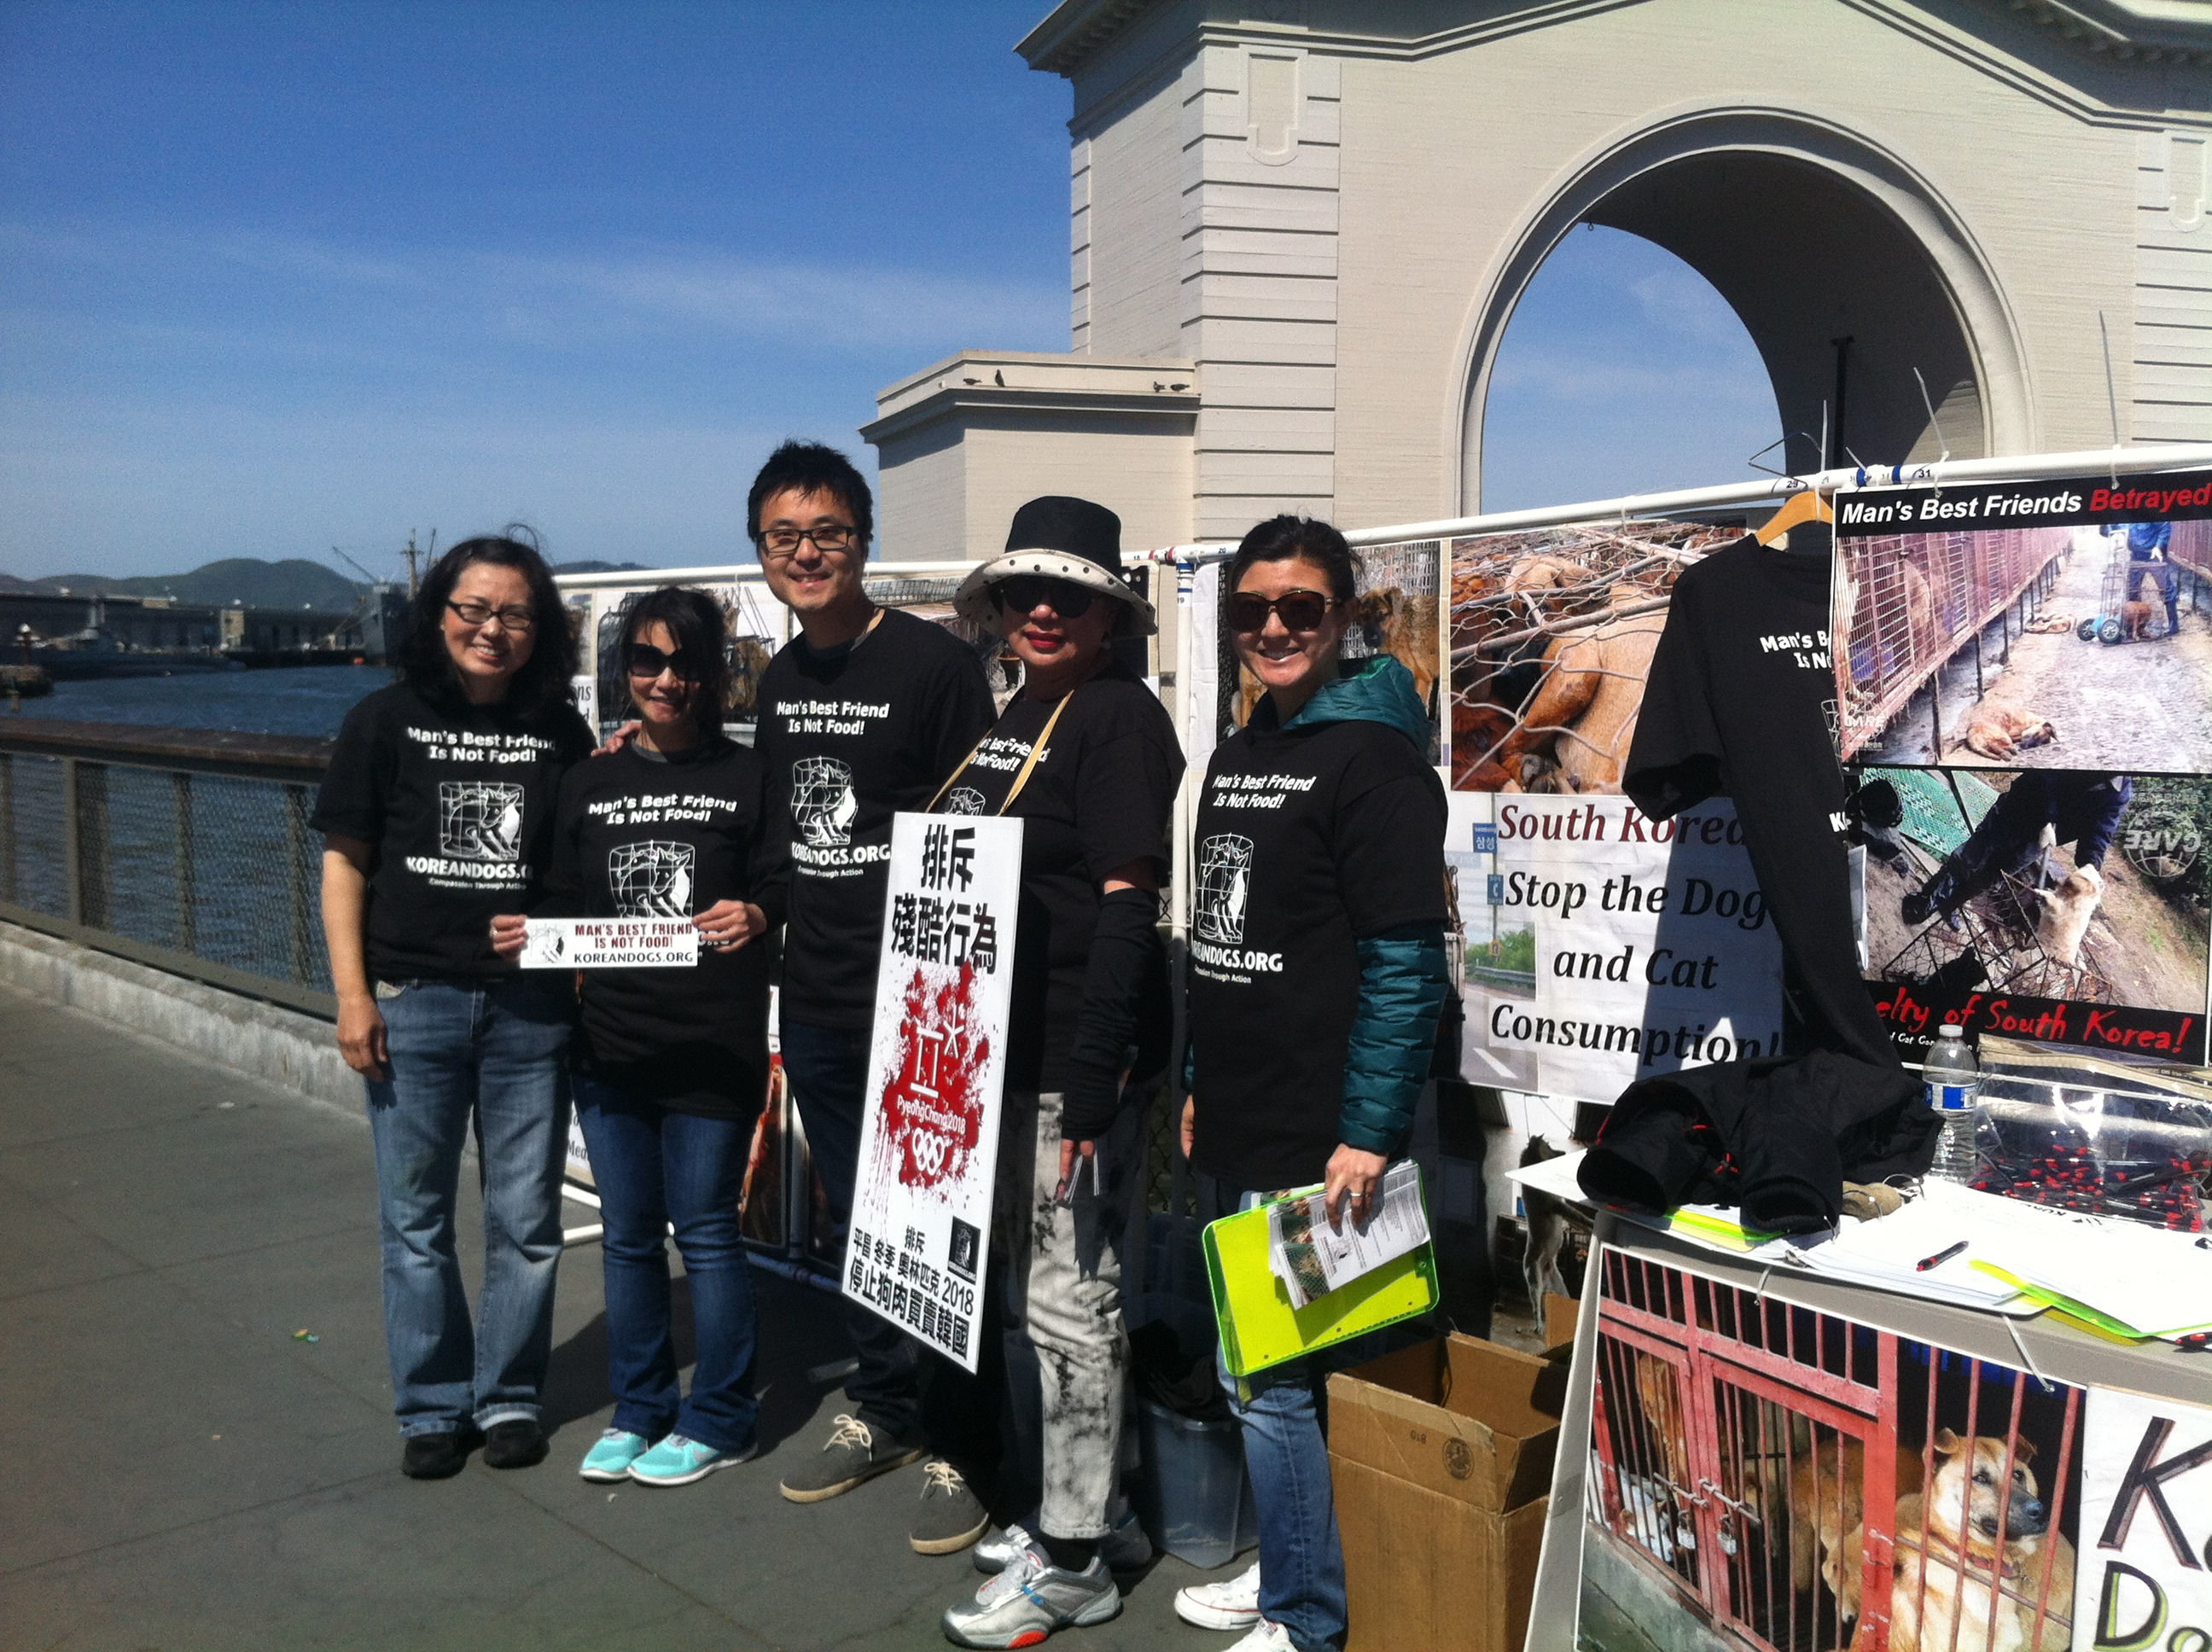 March 27, 2016 Sunday - Fisherman's Wharf, San Francisco, California Leafleting and Informational Event on South Korean Dog Meat Trade